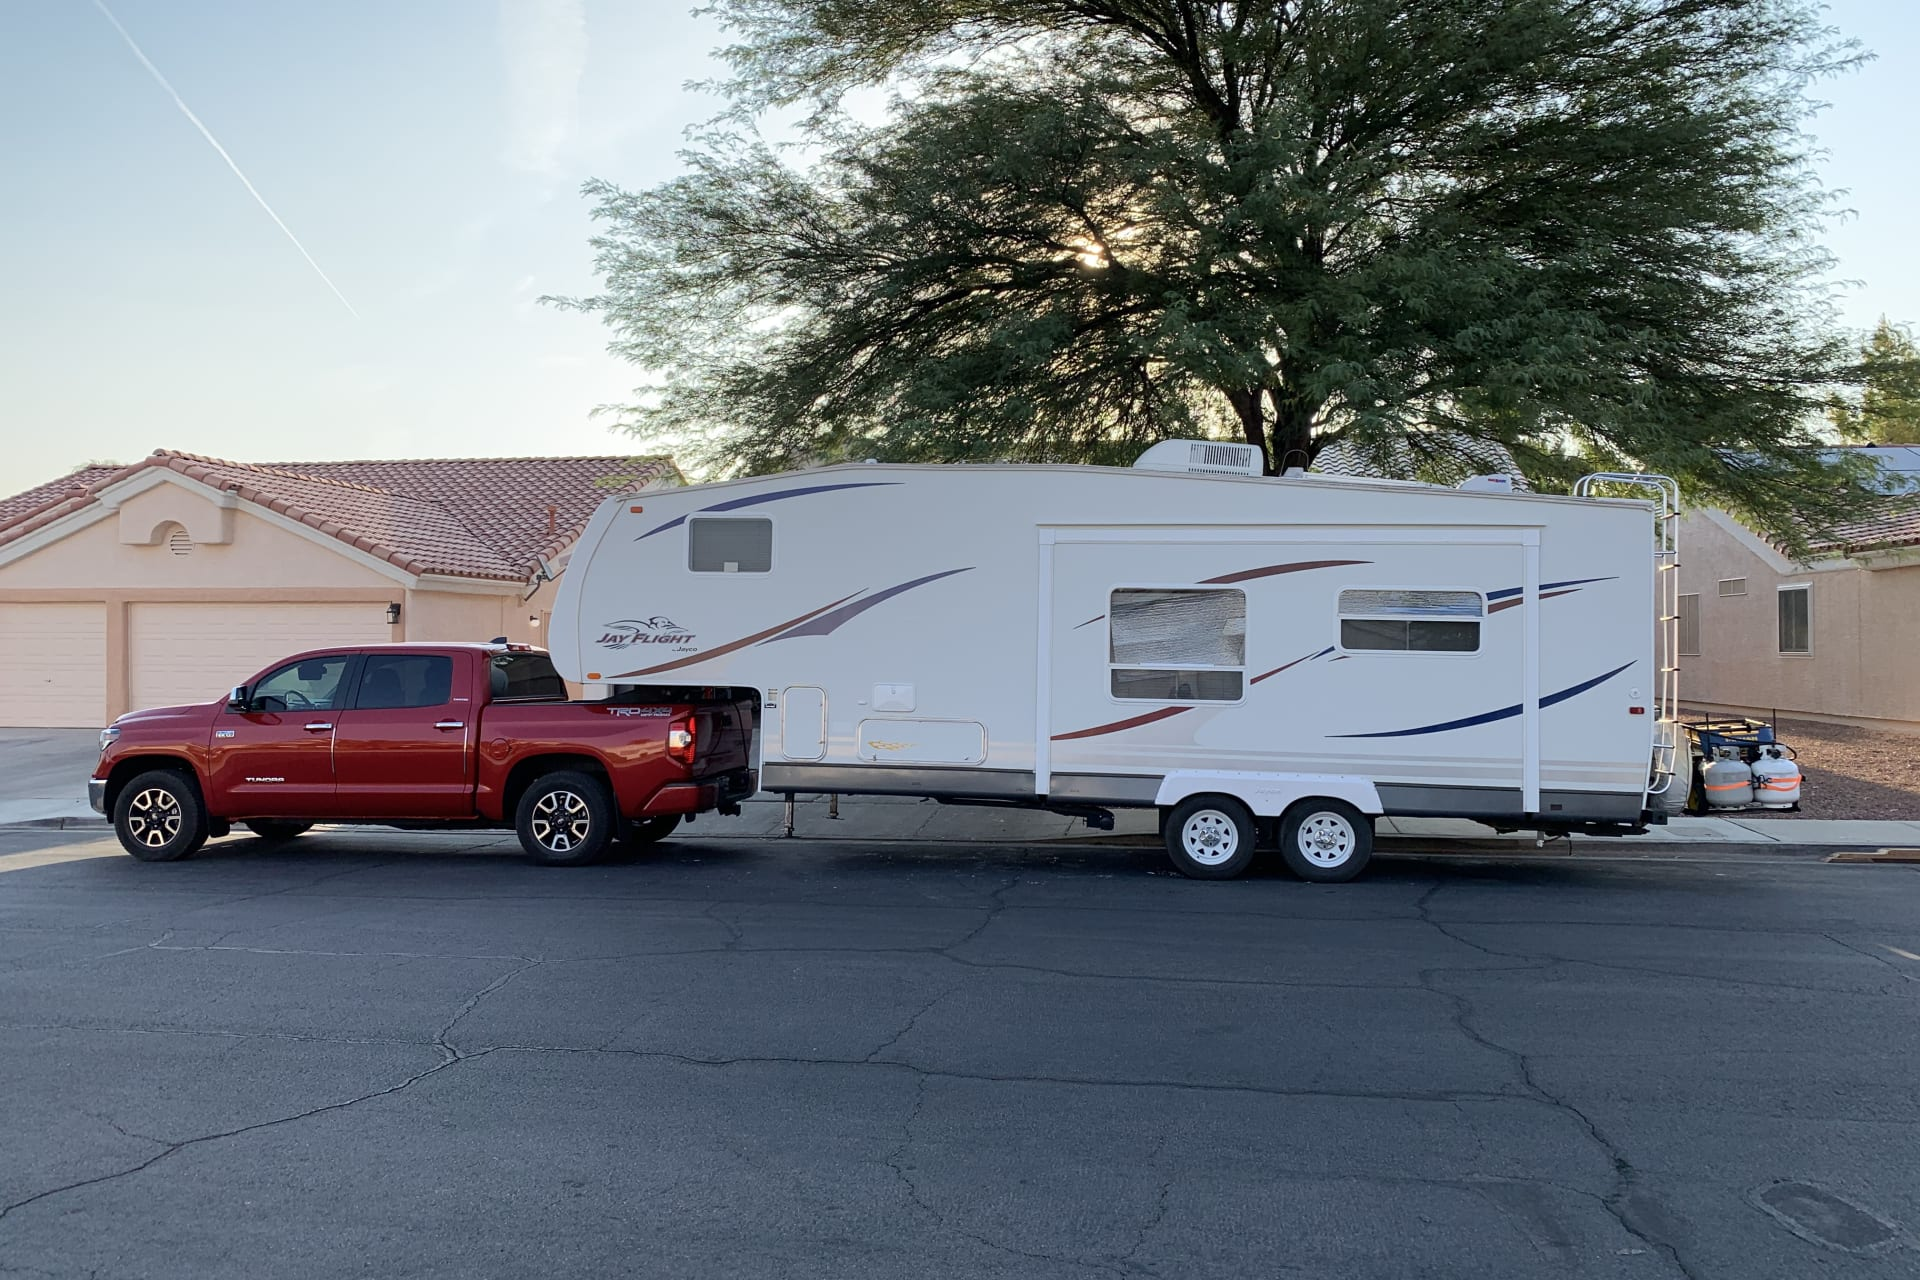 2006 Jayco Jay Flight rls 27.5